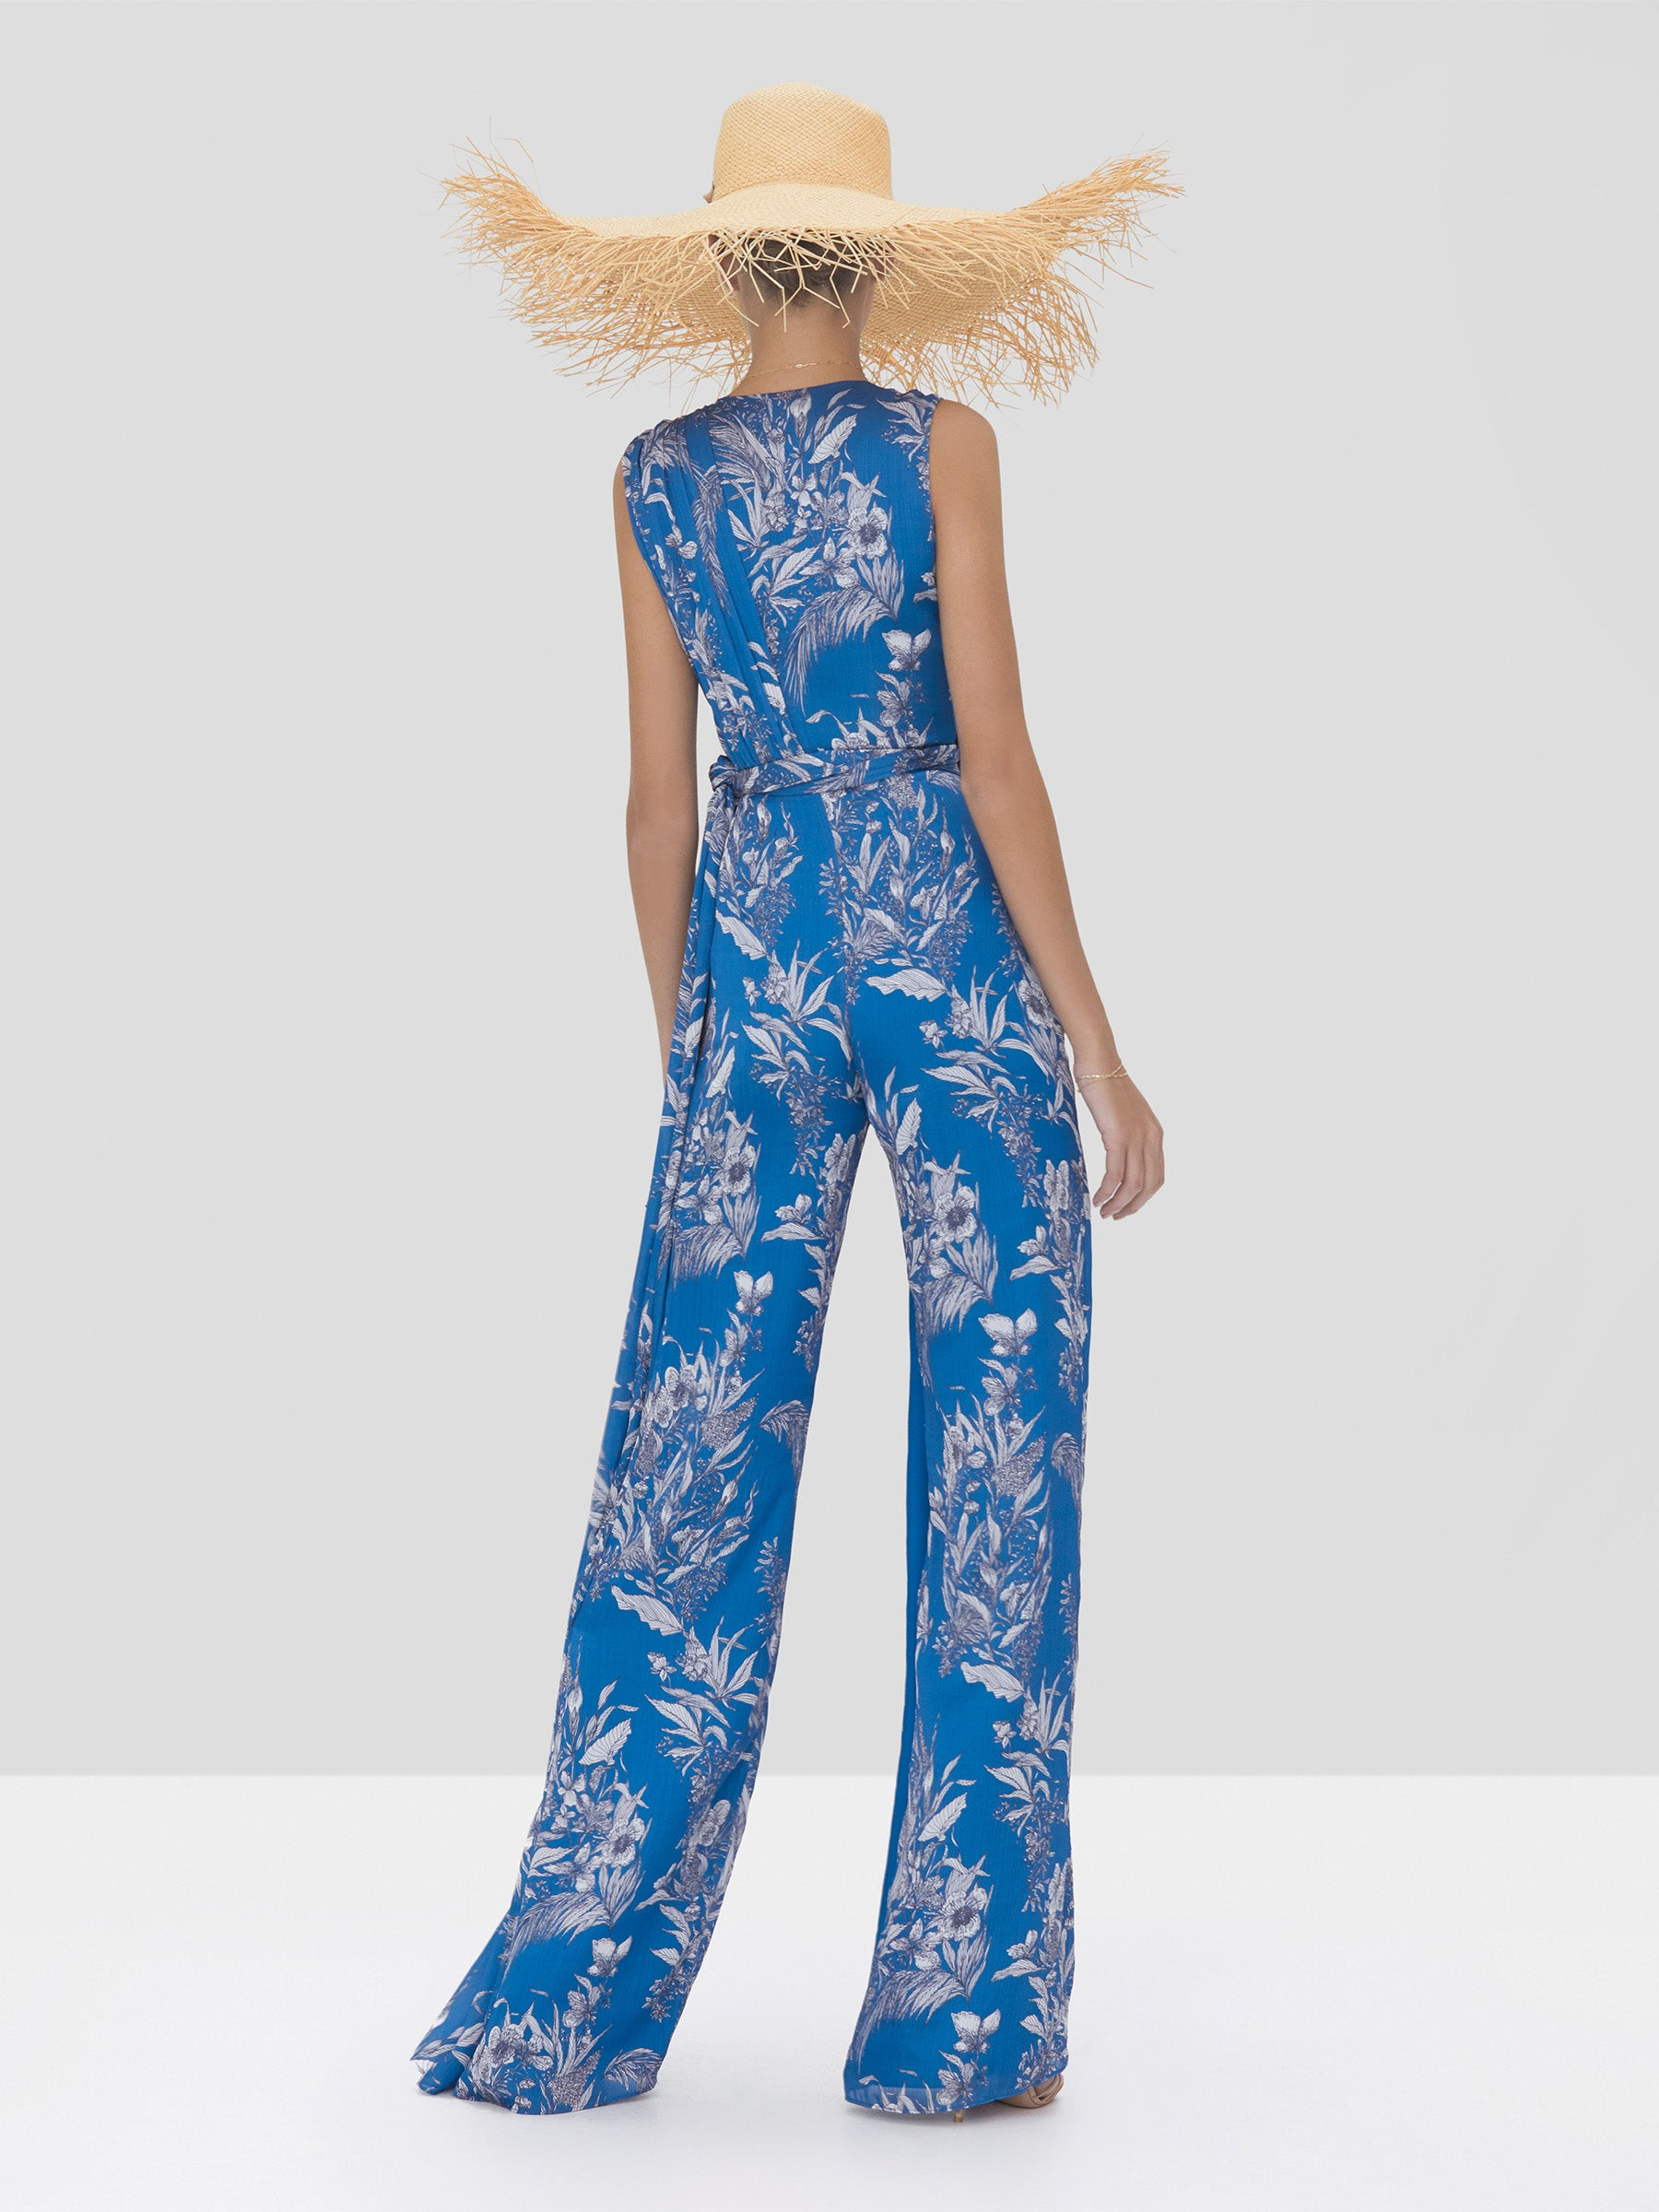 Alexis Kamiko Jumpsuit in Blue Palm from Spring Summer 2020 Collection - Rear View